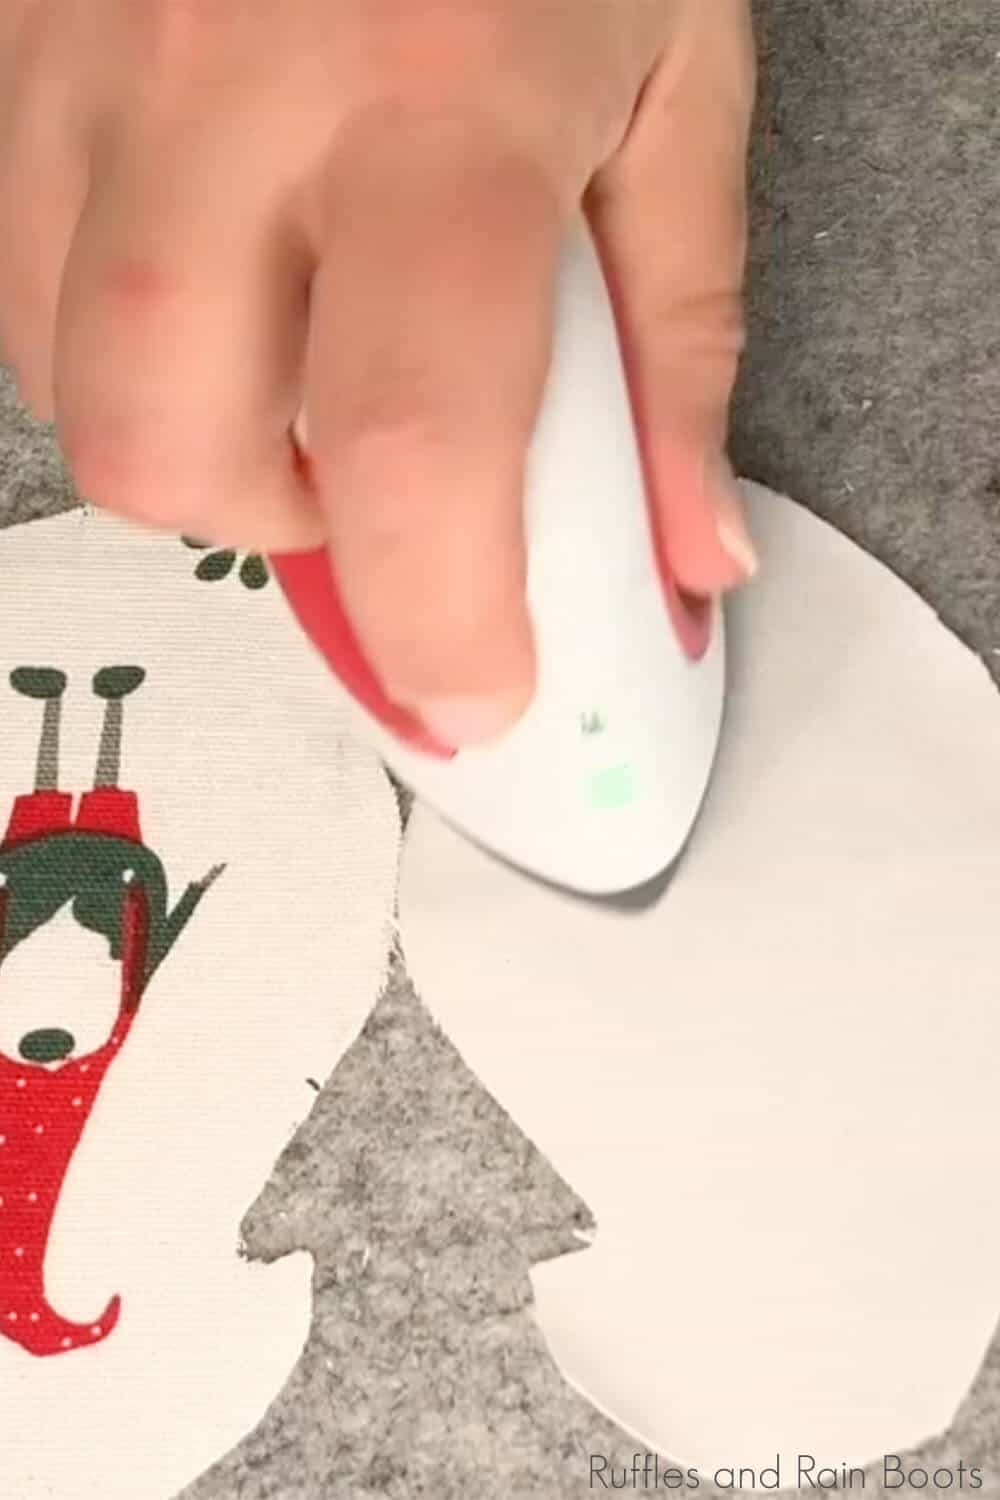 in-process step of ironing fabric to make a napkin ornament tutorial